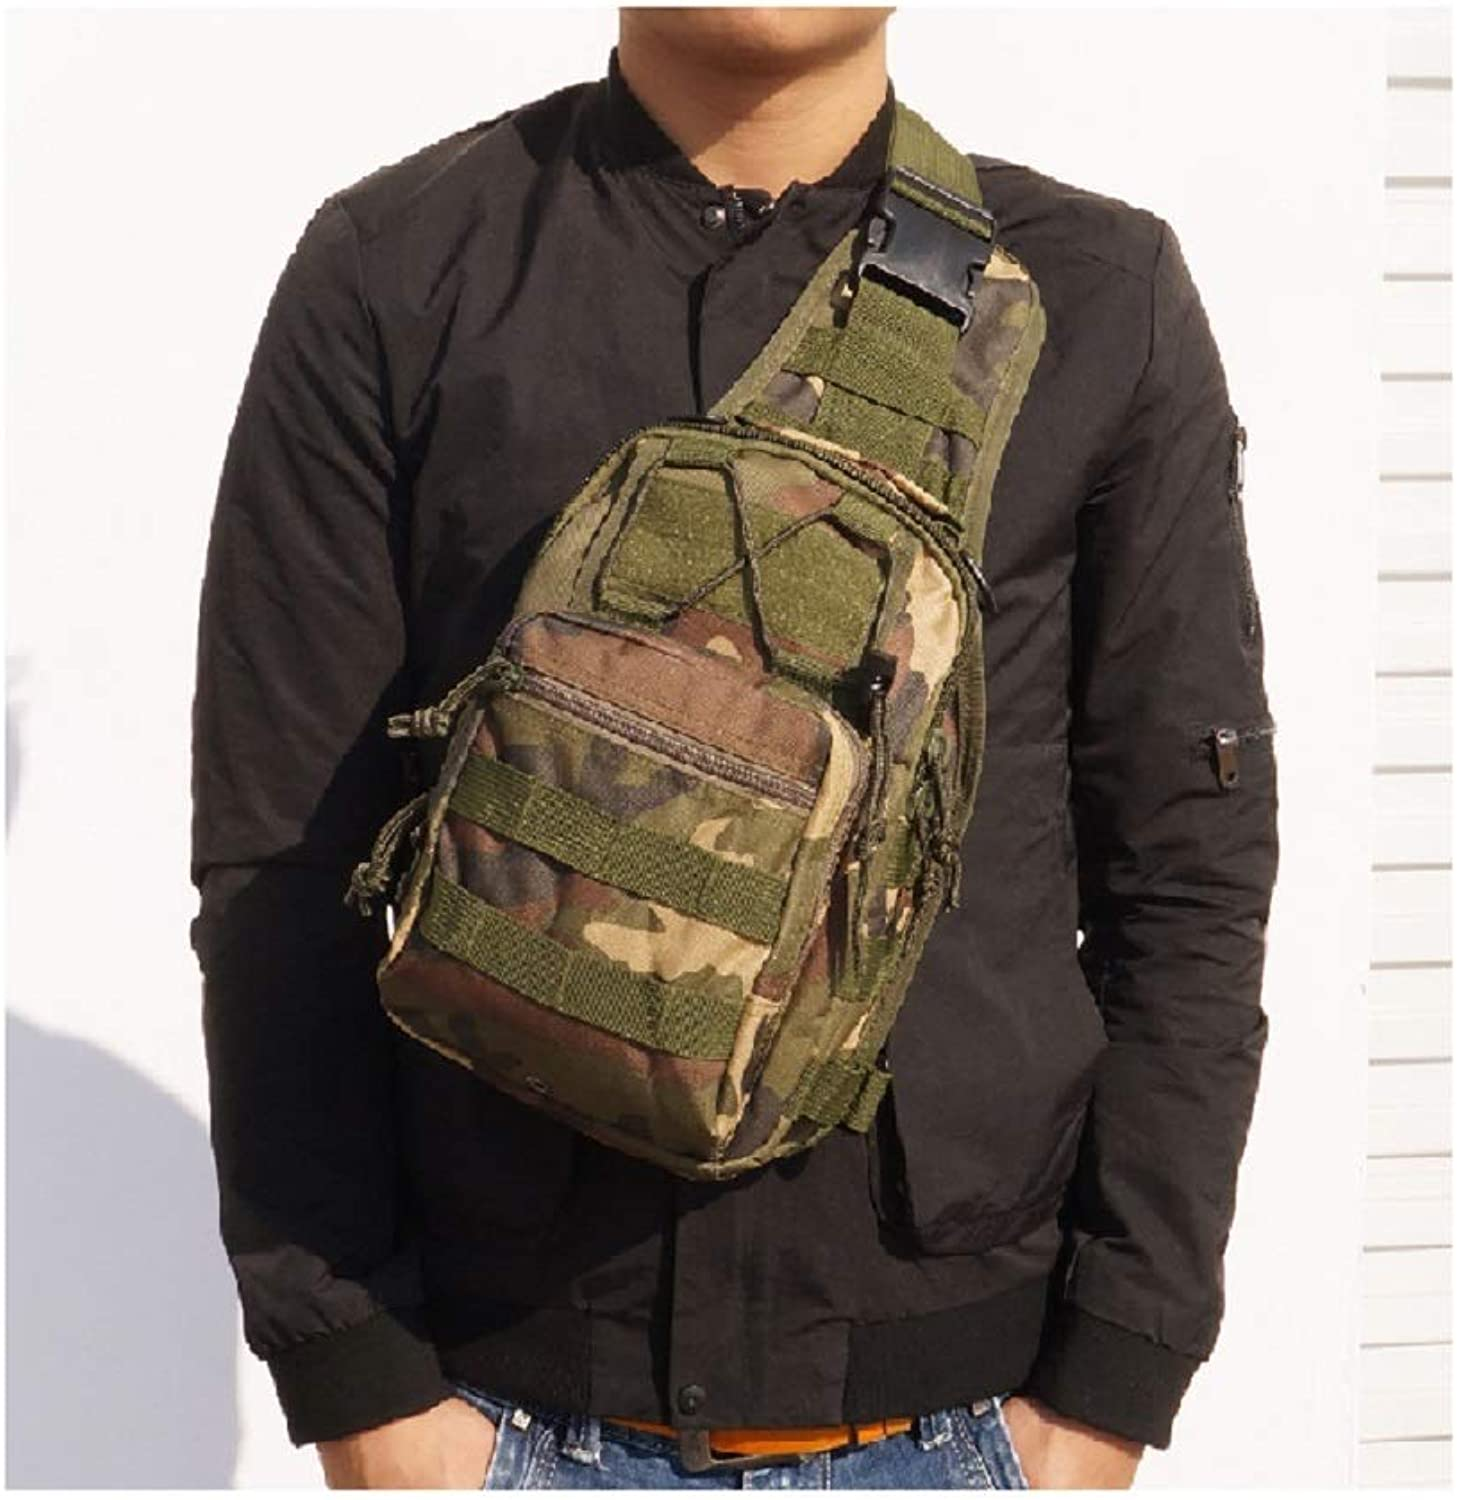 Canvas Riding Bag Tactical Camouflage Field Sports Small Shoulder Diagonal Outdoor Tactical Chest Bag,Outdoor (color   E, Size   28  18  13cm 11.0  7.1  5.1in)